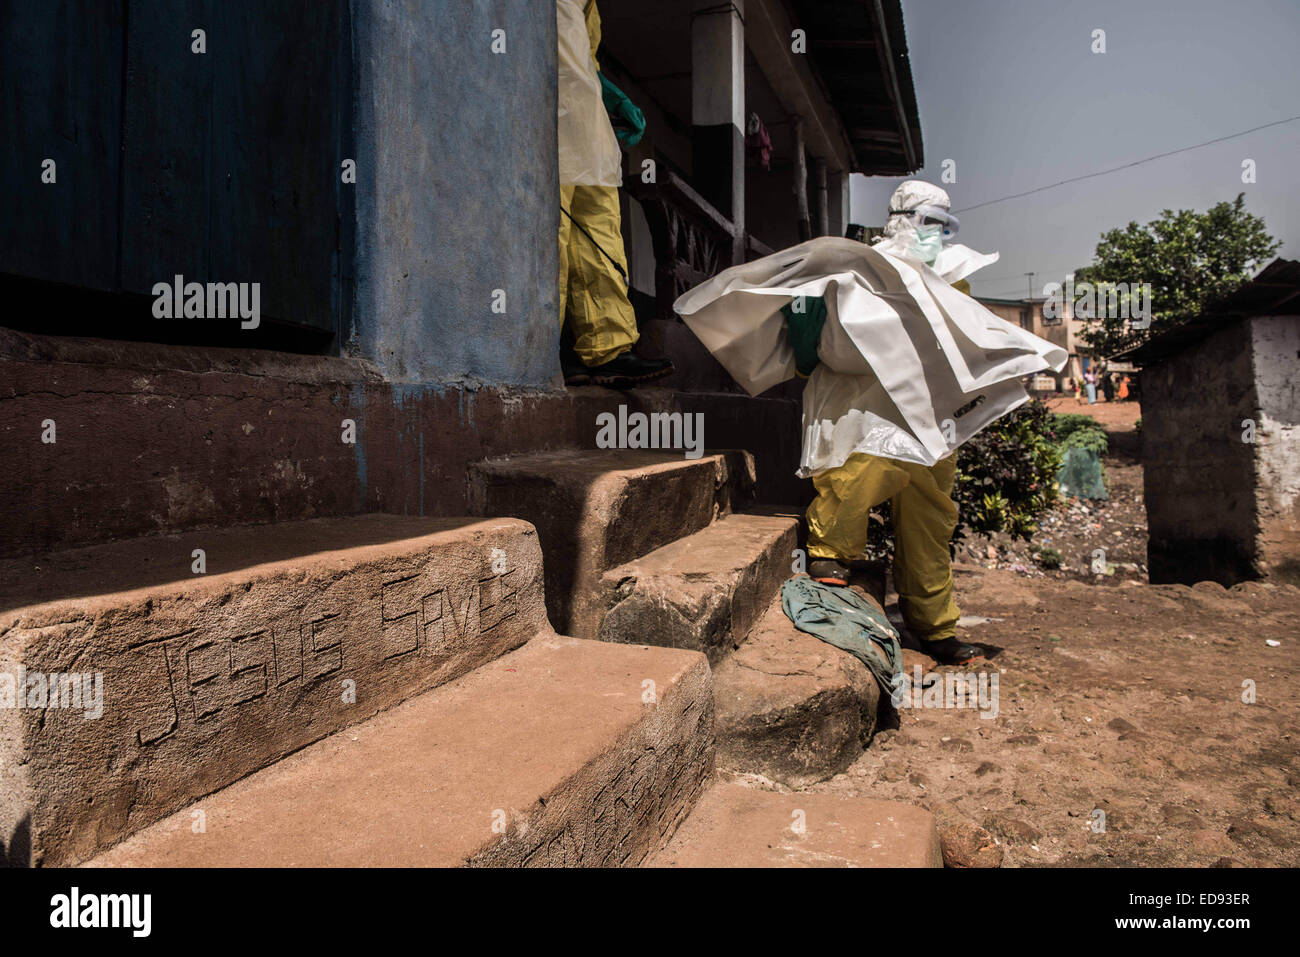 A burial team member removes the body of a baby from a house in Freetown. Unsafe burials are one of the leading - Stock Image